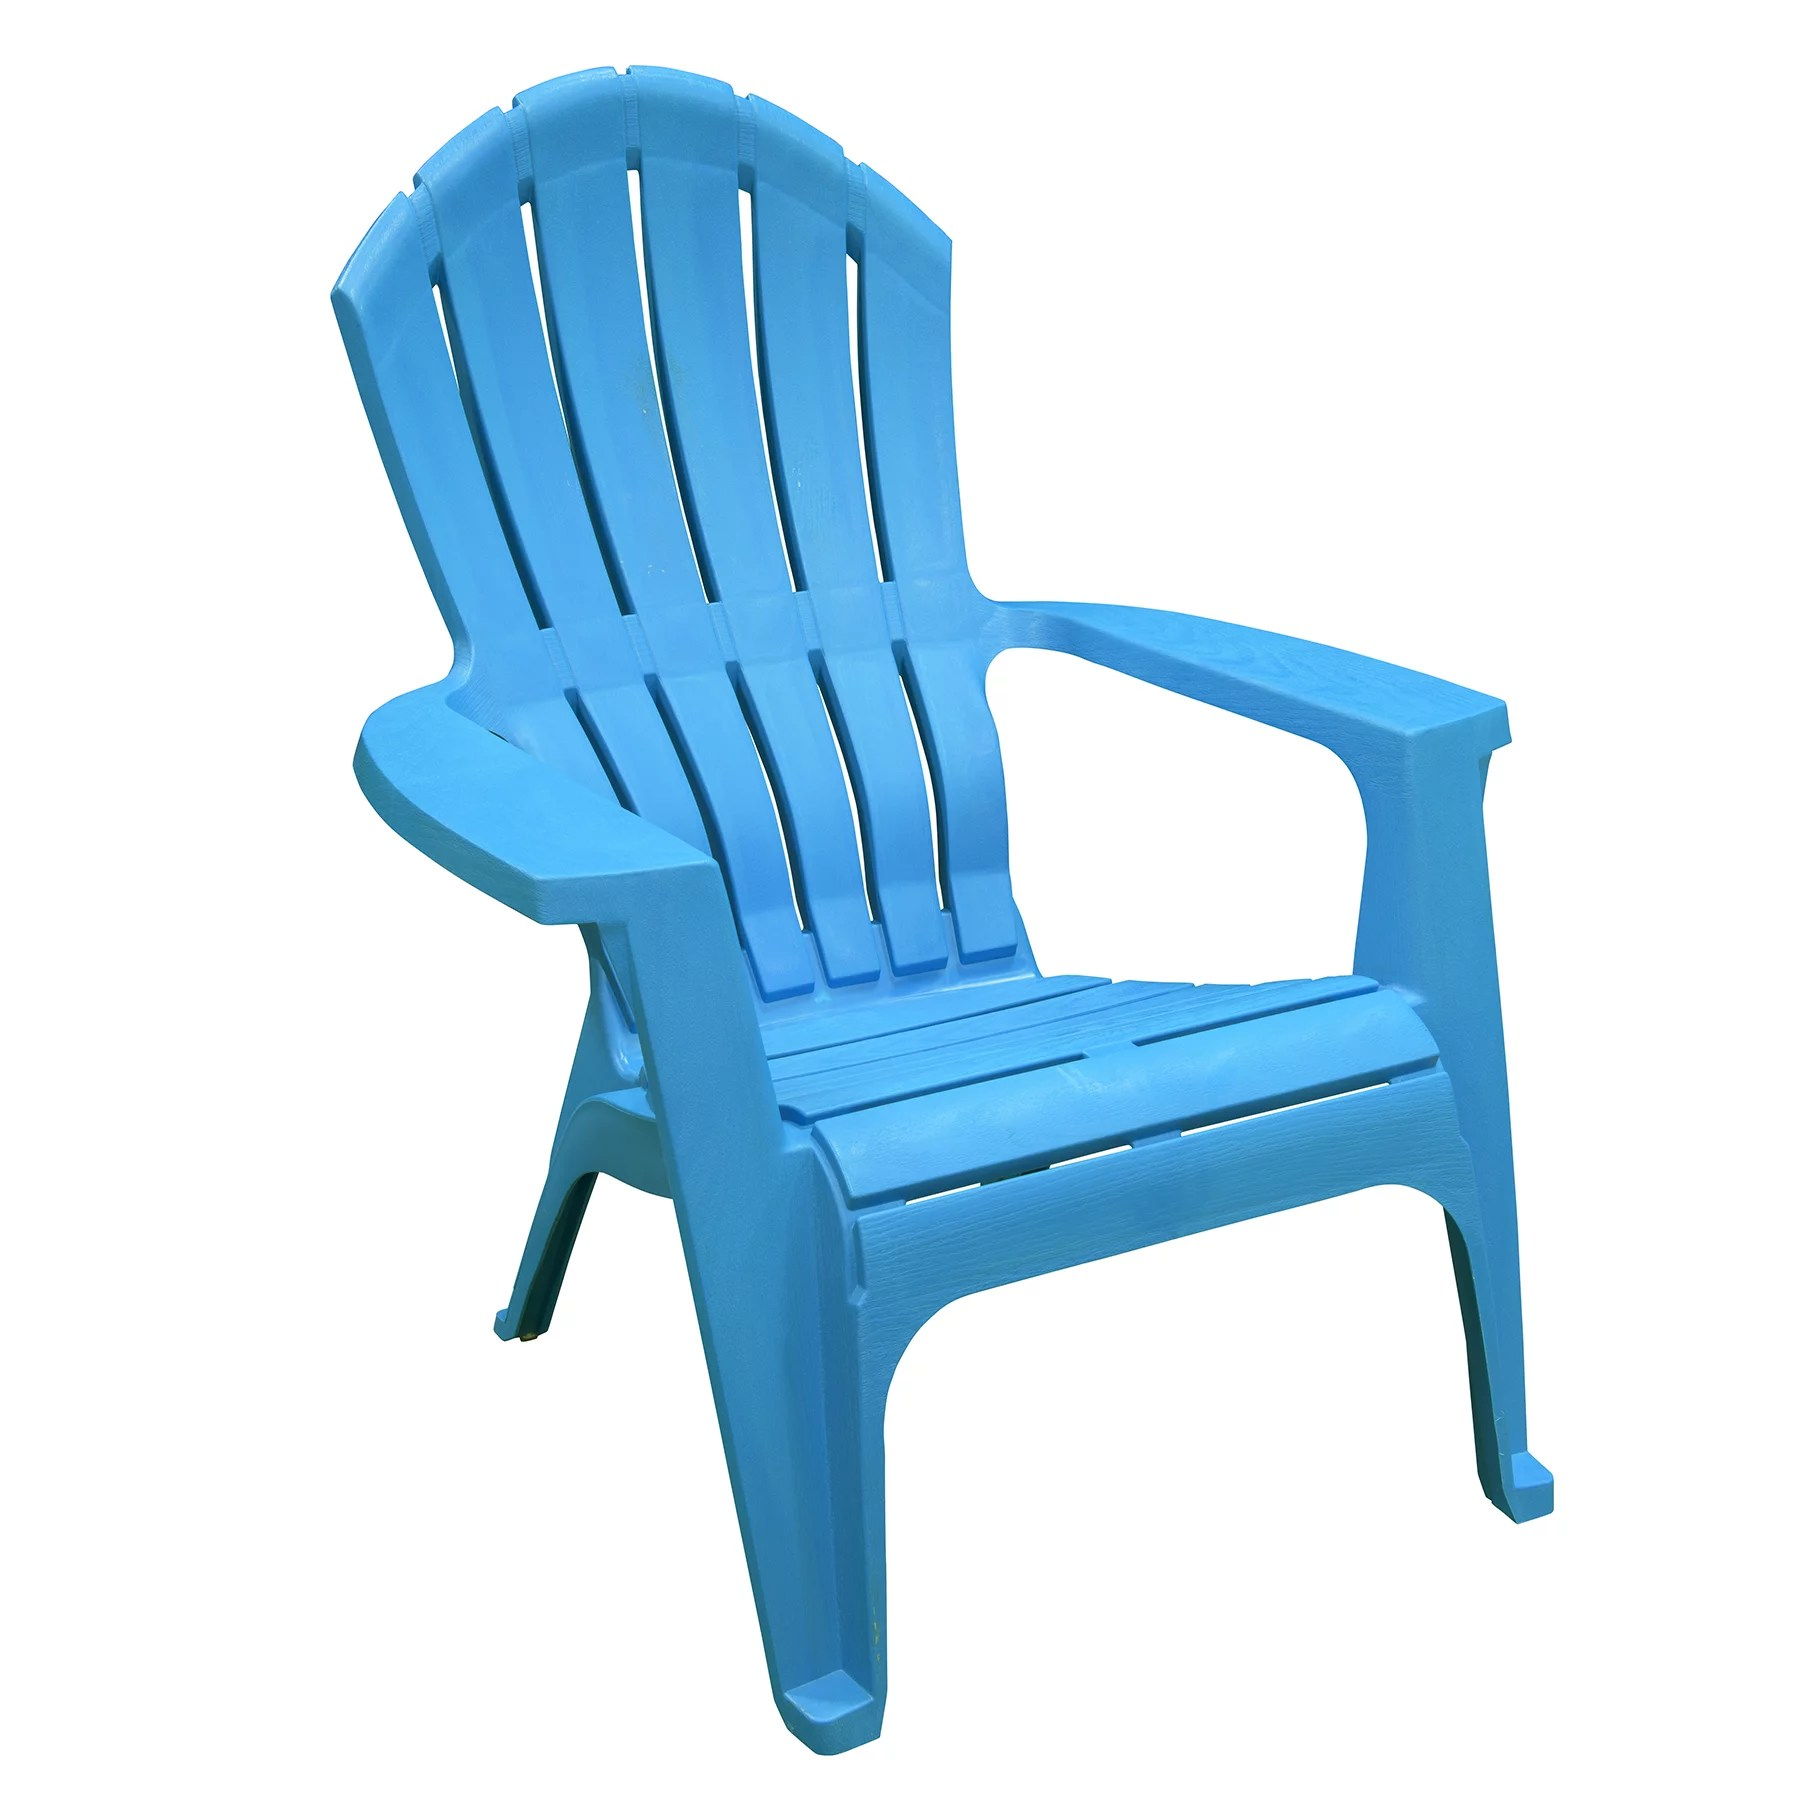 adams manufacturing adirondack chairs club realcomfort chair pool blue walmart